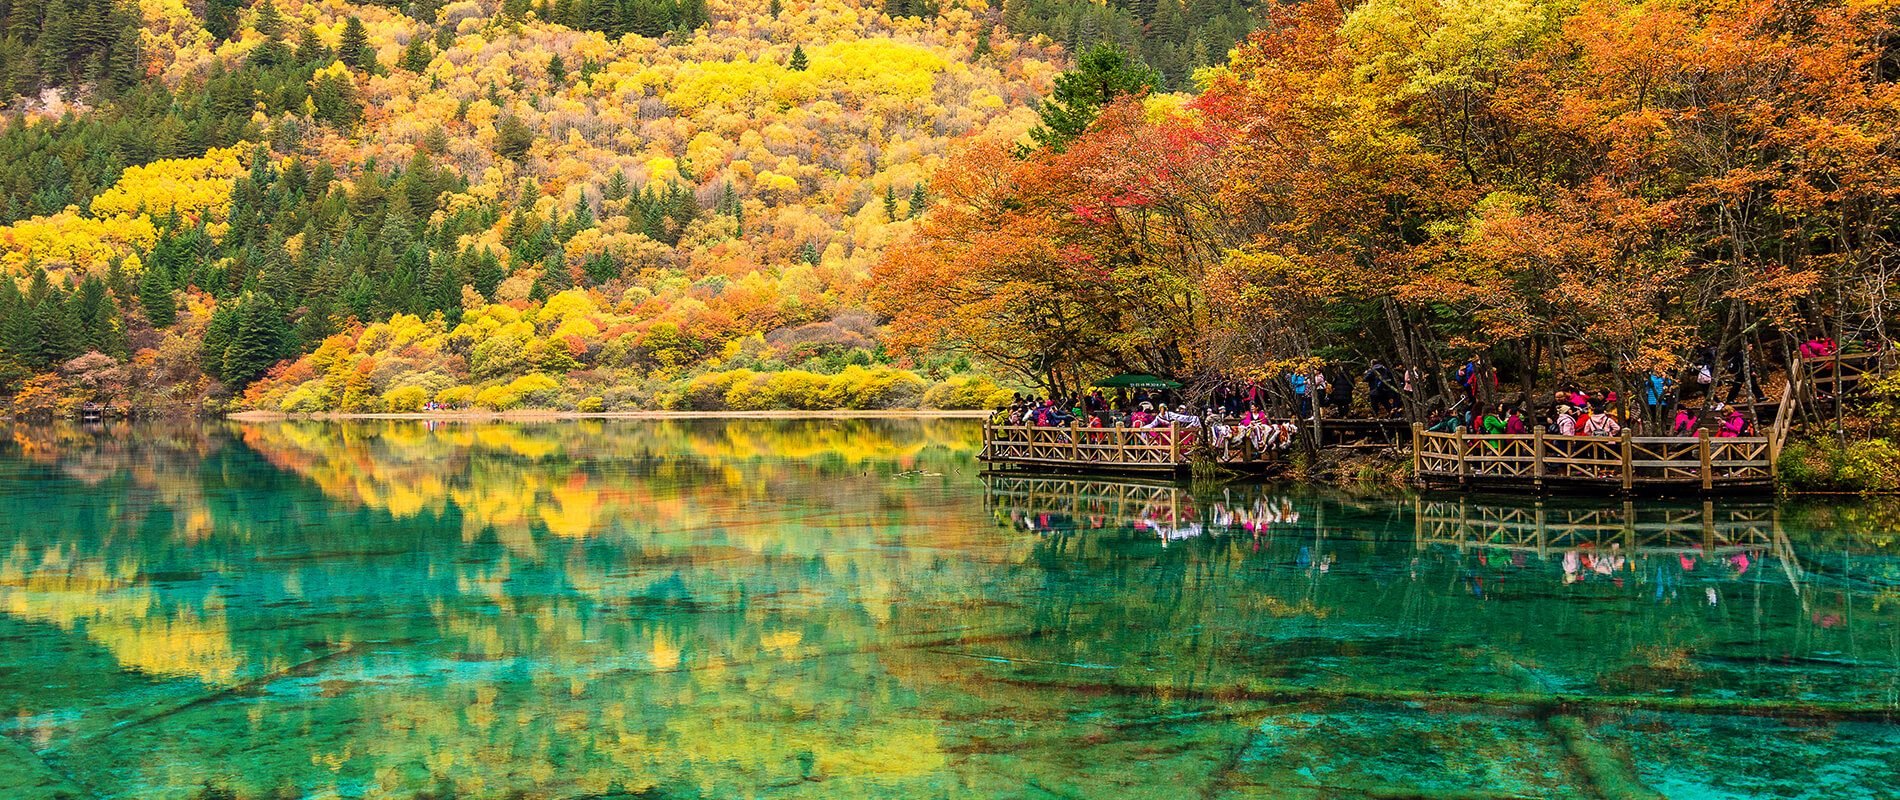 The Lake of Five Flowers, a mirror of water in one of the most beautiful places in the world